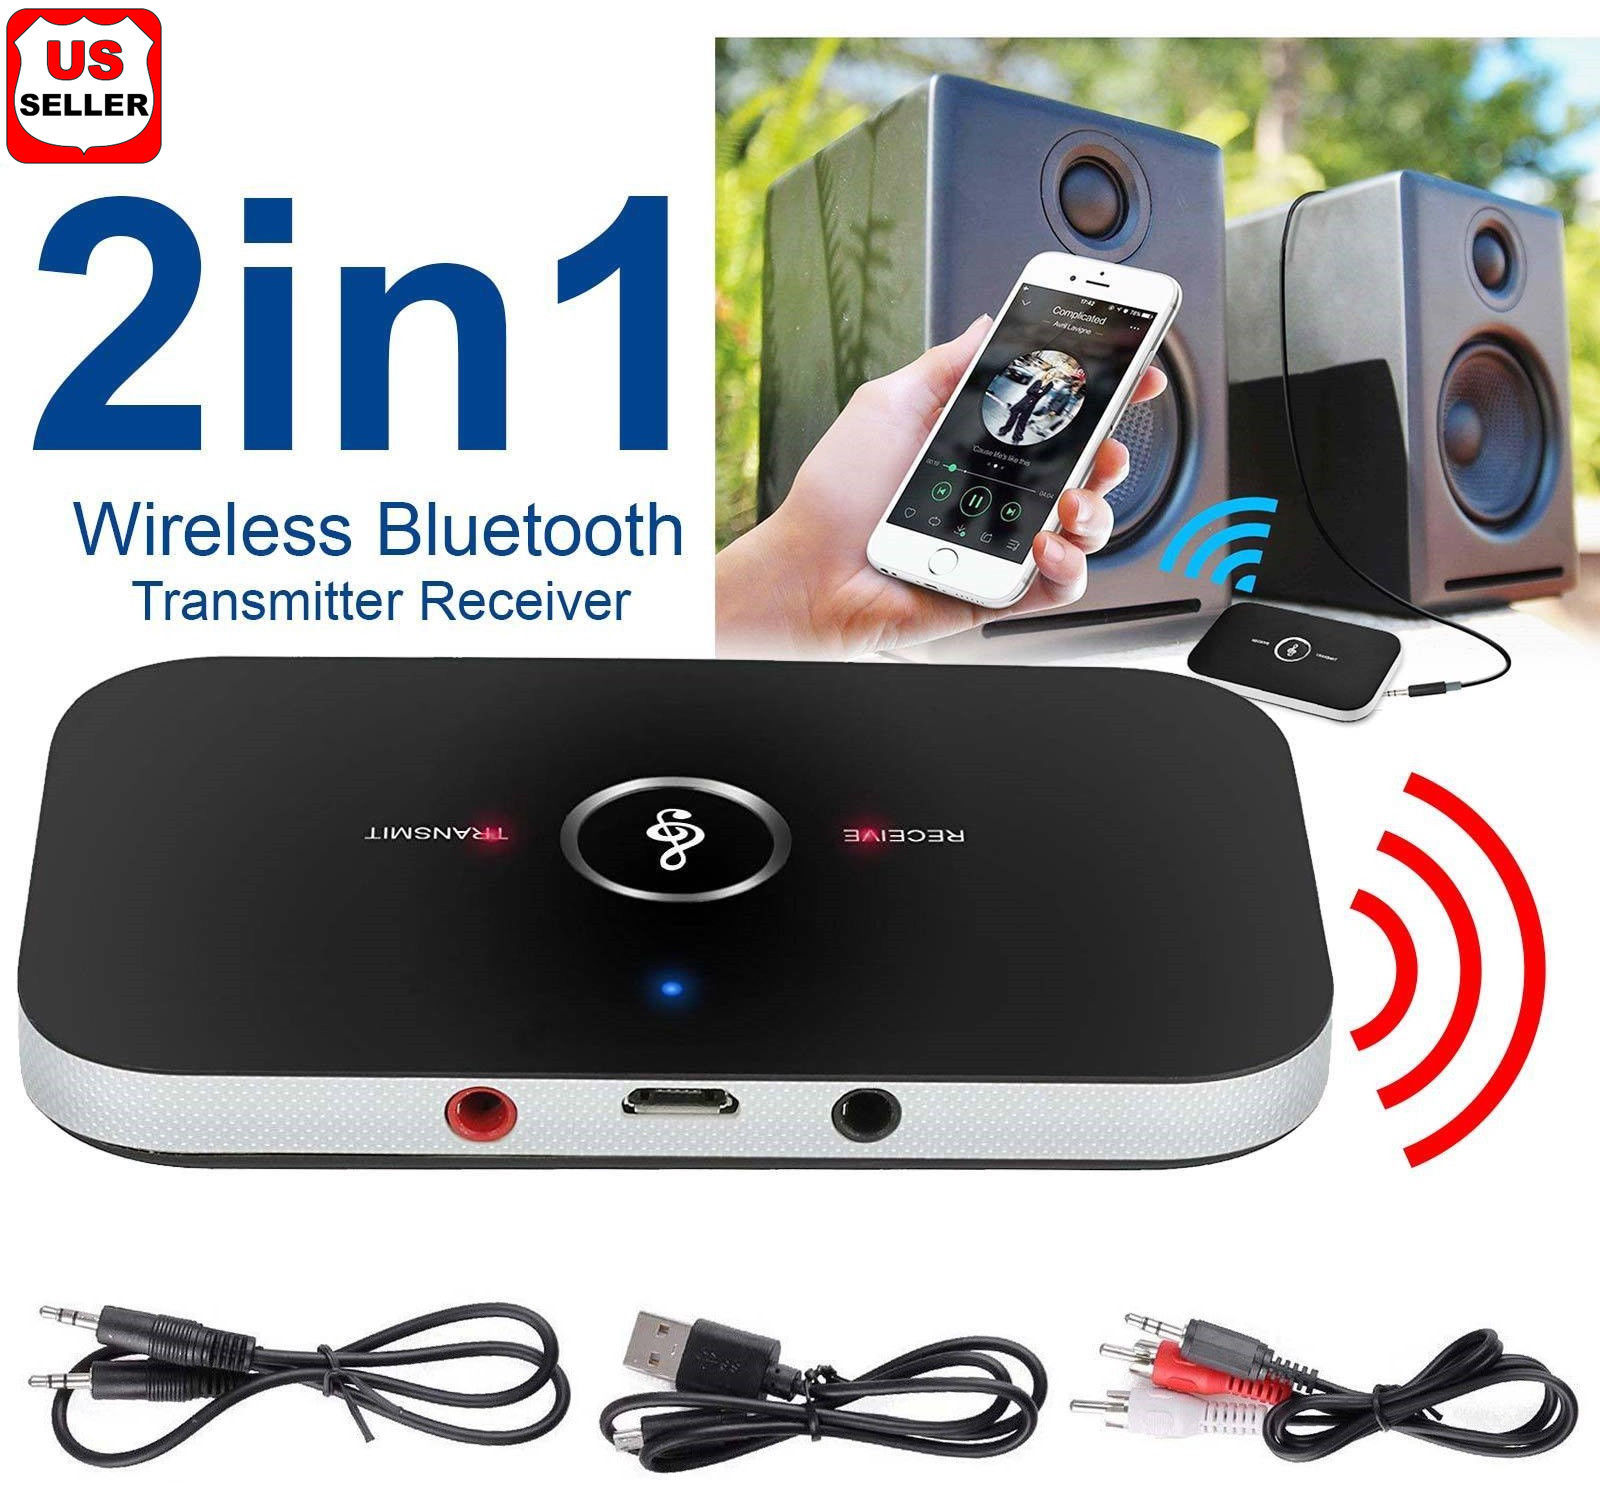 LINKPAL Bluetooth Transmitter & Receiver,Wireless Stereo Audio Adapter Car  Kit for TV,Headphone,Home Stereo System,Computer, Bluetooth V4 Transmitter